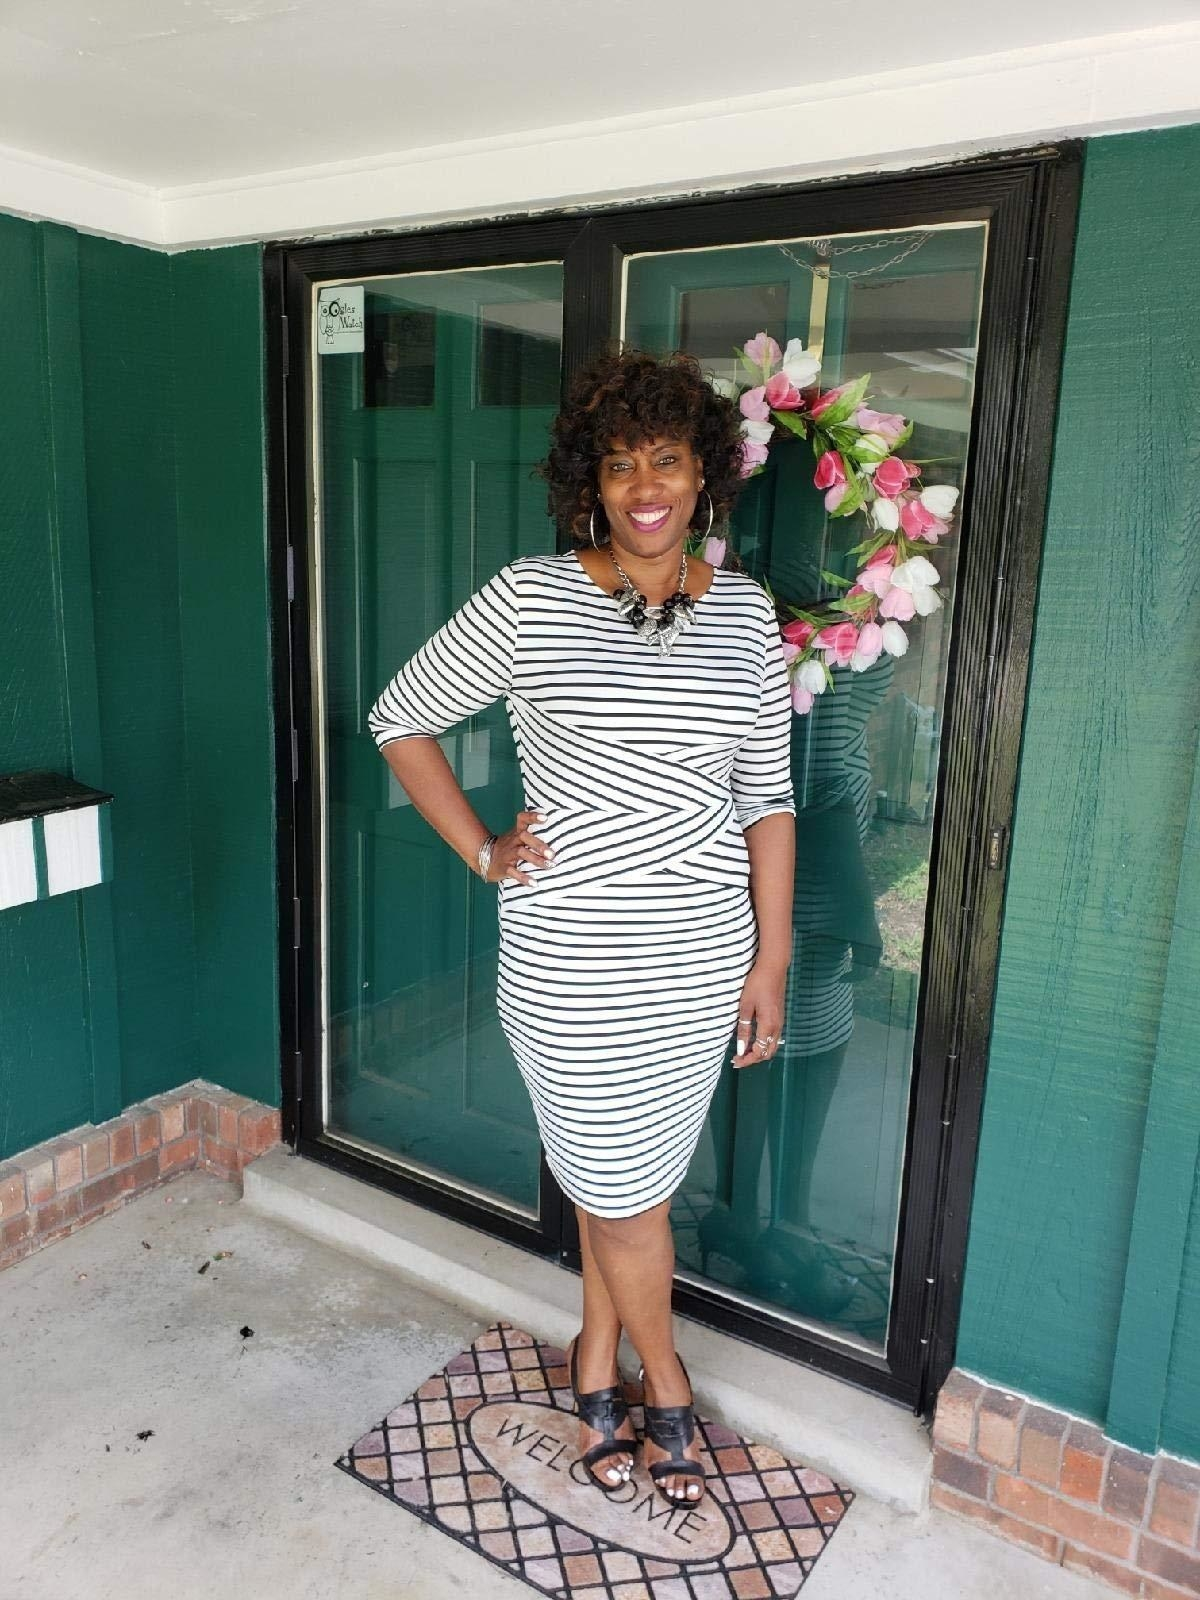 """Promising review: """"I usually don't leave reviews on Amazon but I love this dress so I had to add my thoughts. The dress is soft and stretchy. It looks just like the picture, which means it is super flattering. In addition to being flattering, it is very comfortable. It feels like you are wearing sweatpants but you look professional and put together."""" —all226Get it from Amazon for .99+ (available in sizes S–XXL and 21 colors)."""